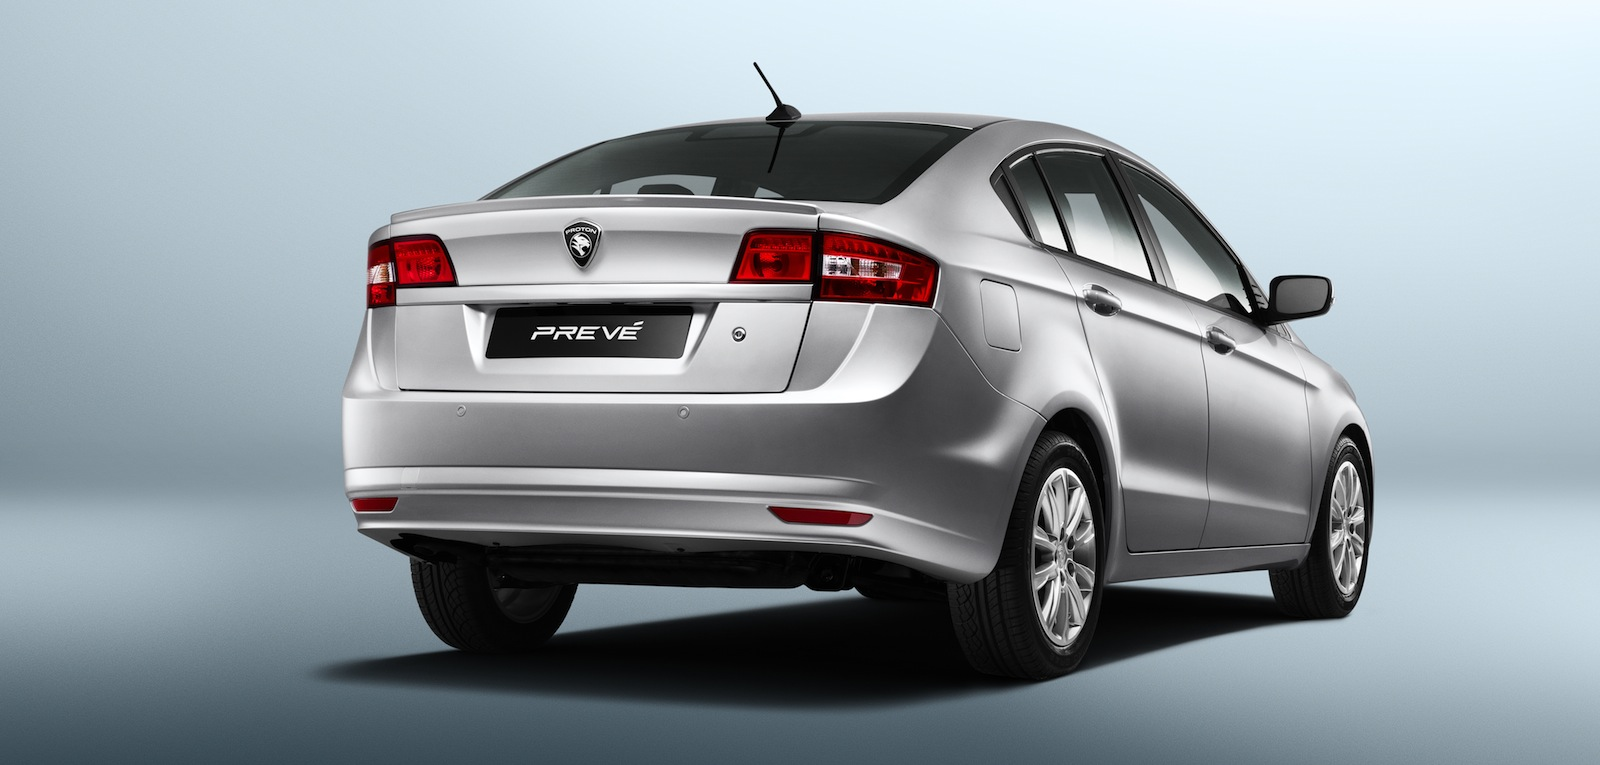 Proton Prevé GXR: pricing and specifications - photos ...